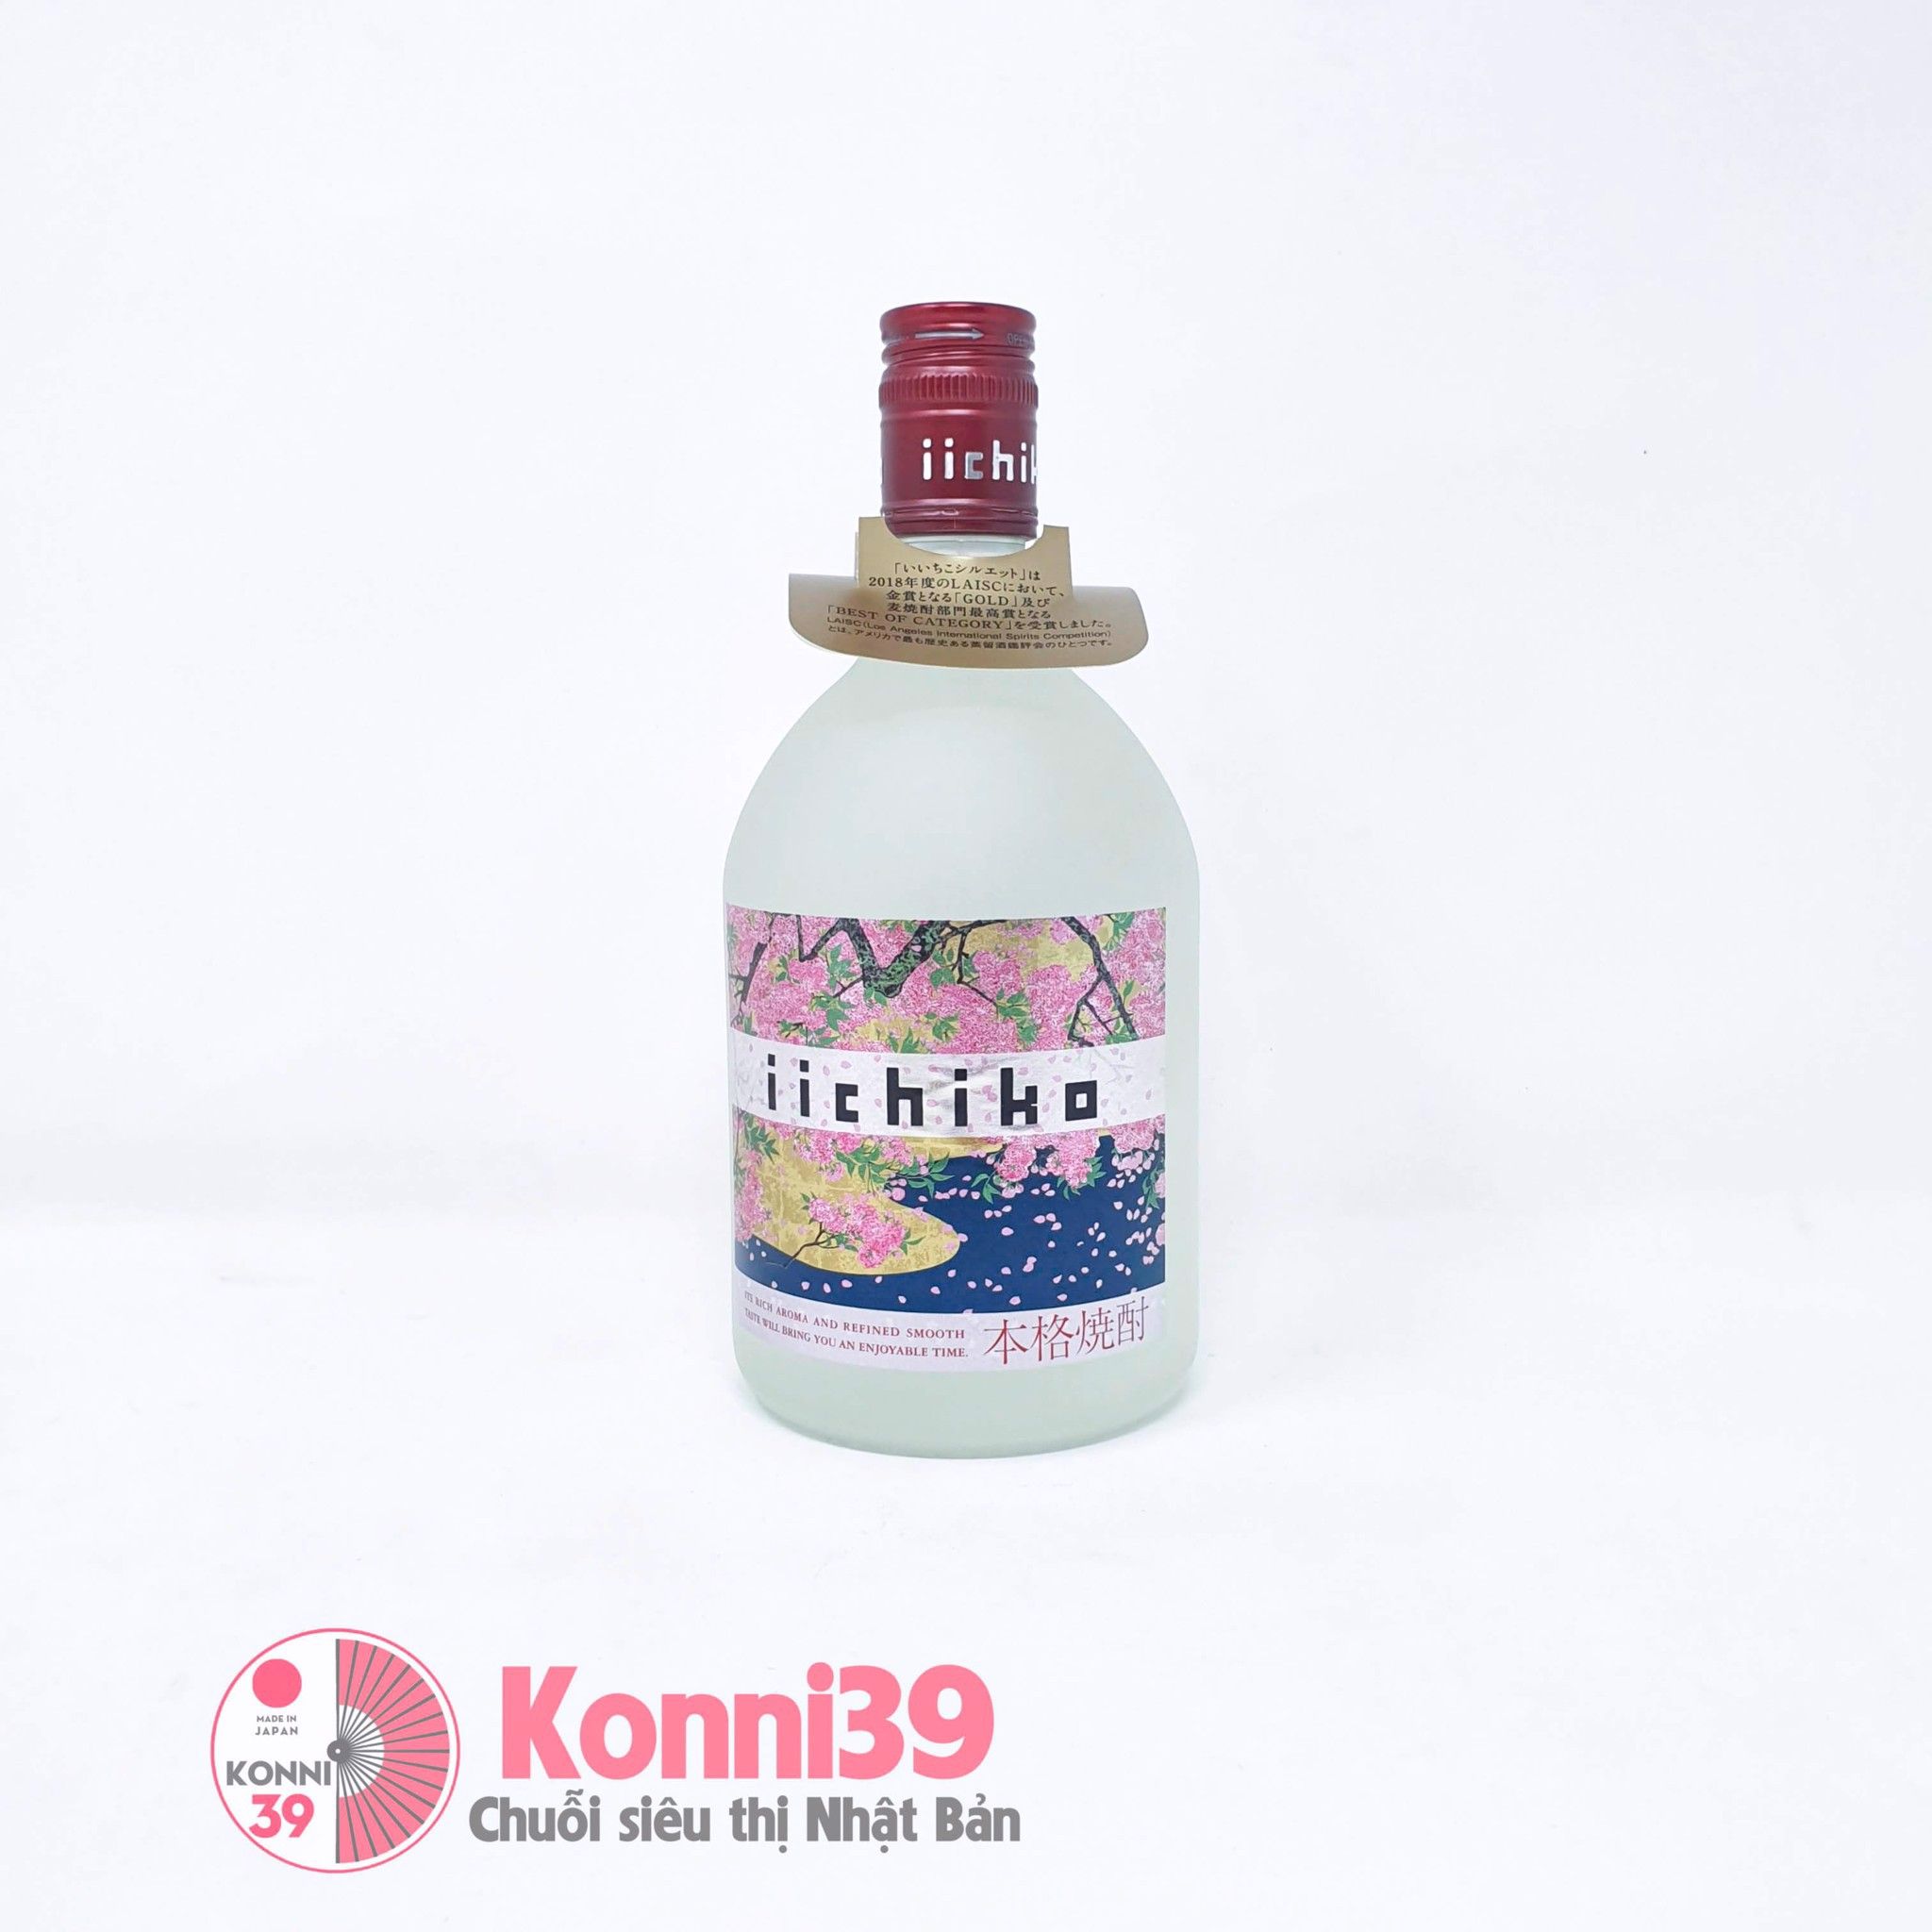 Rượu shochu Iichiko 720ml